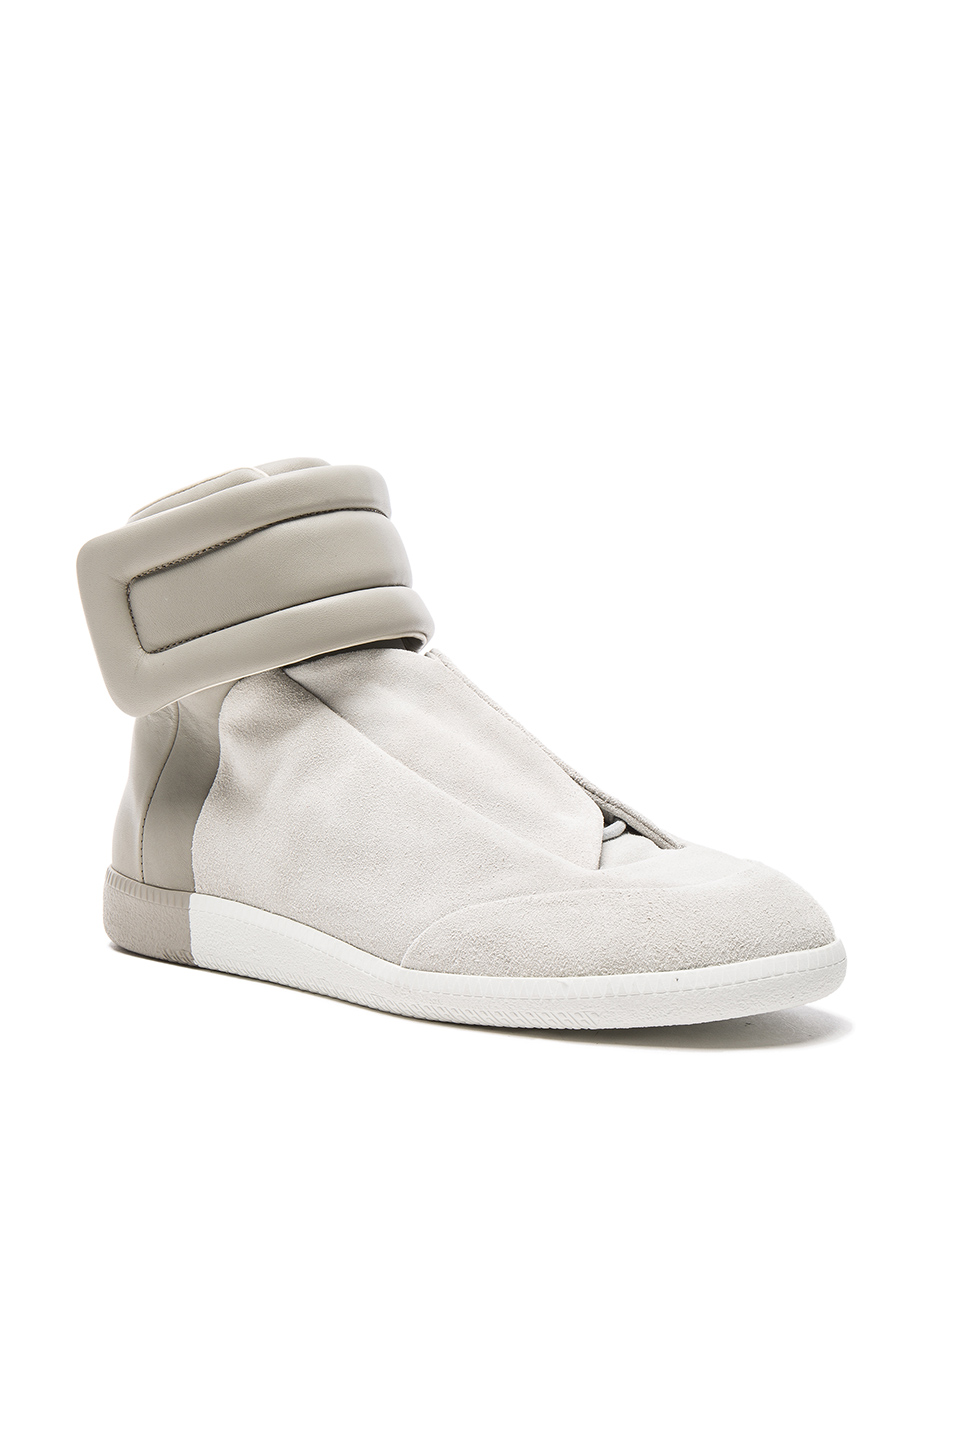 Maison Margiela Calfskin & Suede Future High Tops in Gray